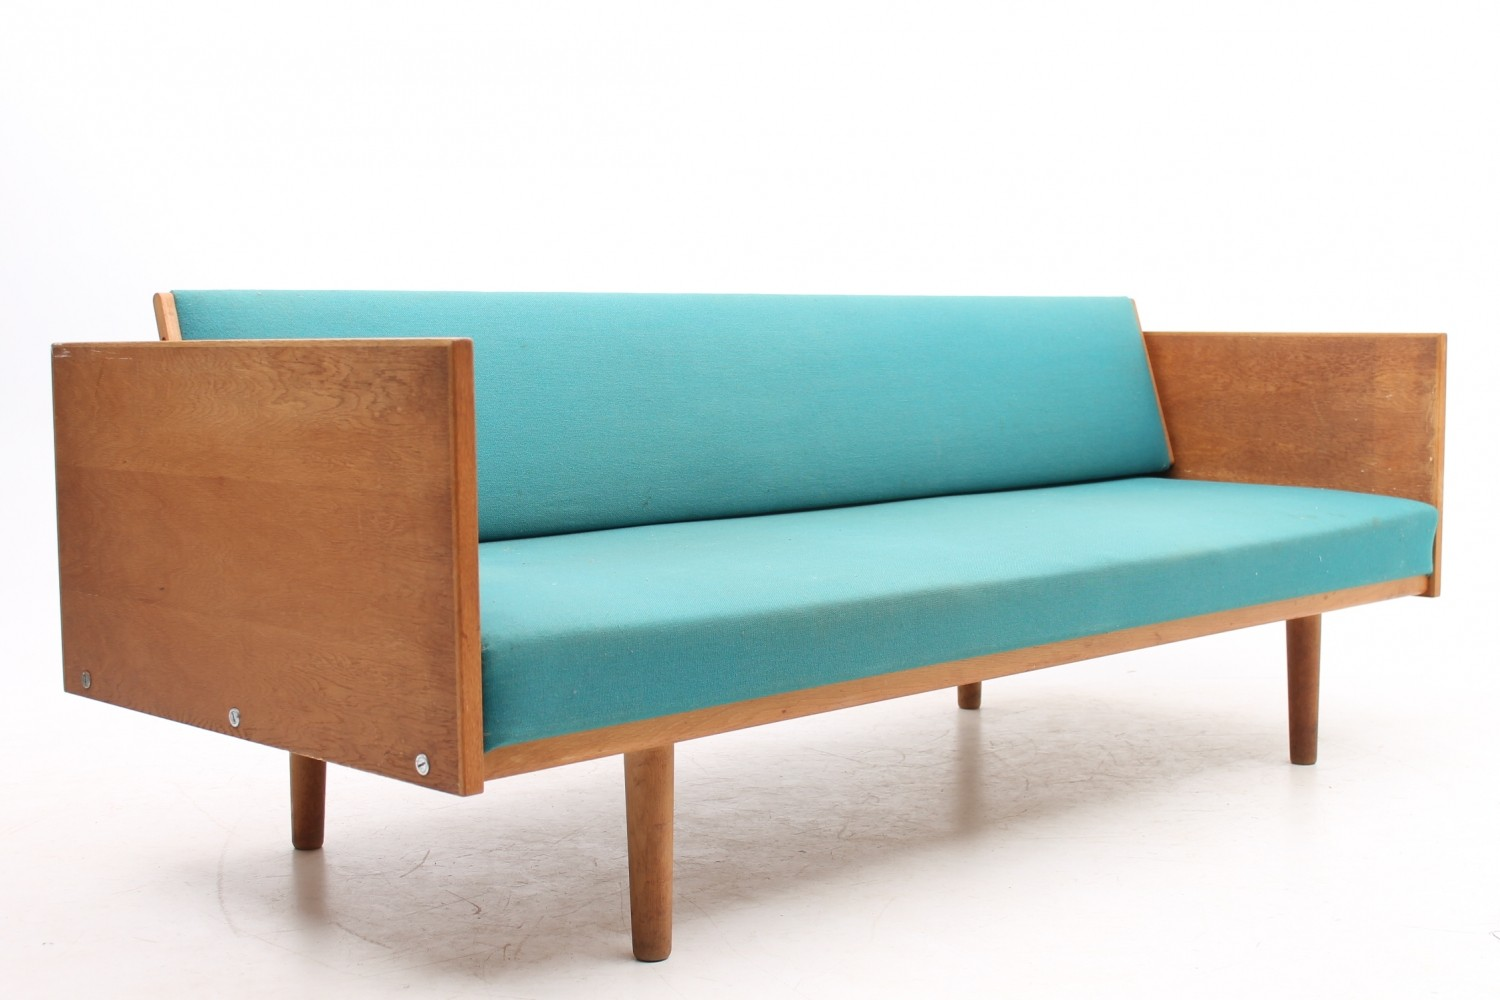 Daybed GE7 Sofa from the fifties by Hans Wegner for Getama